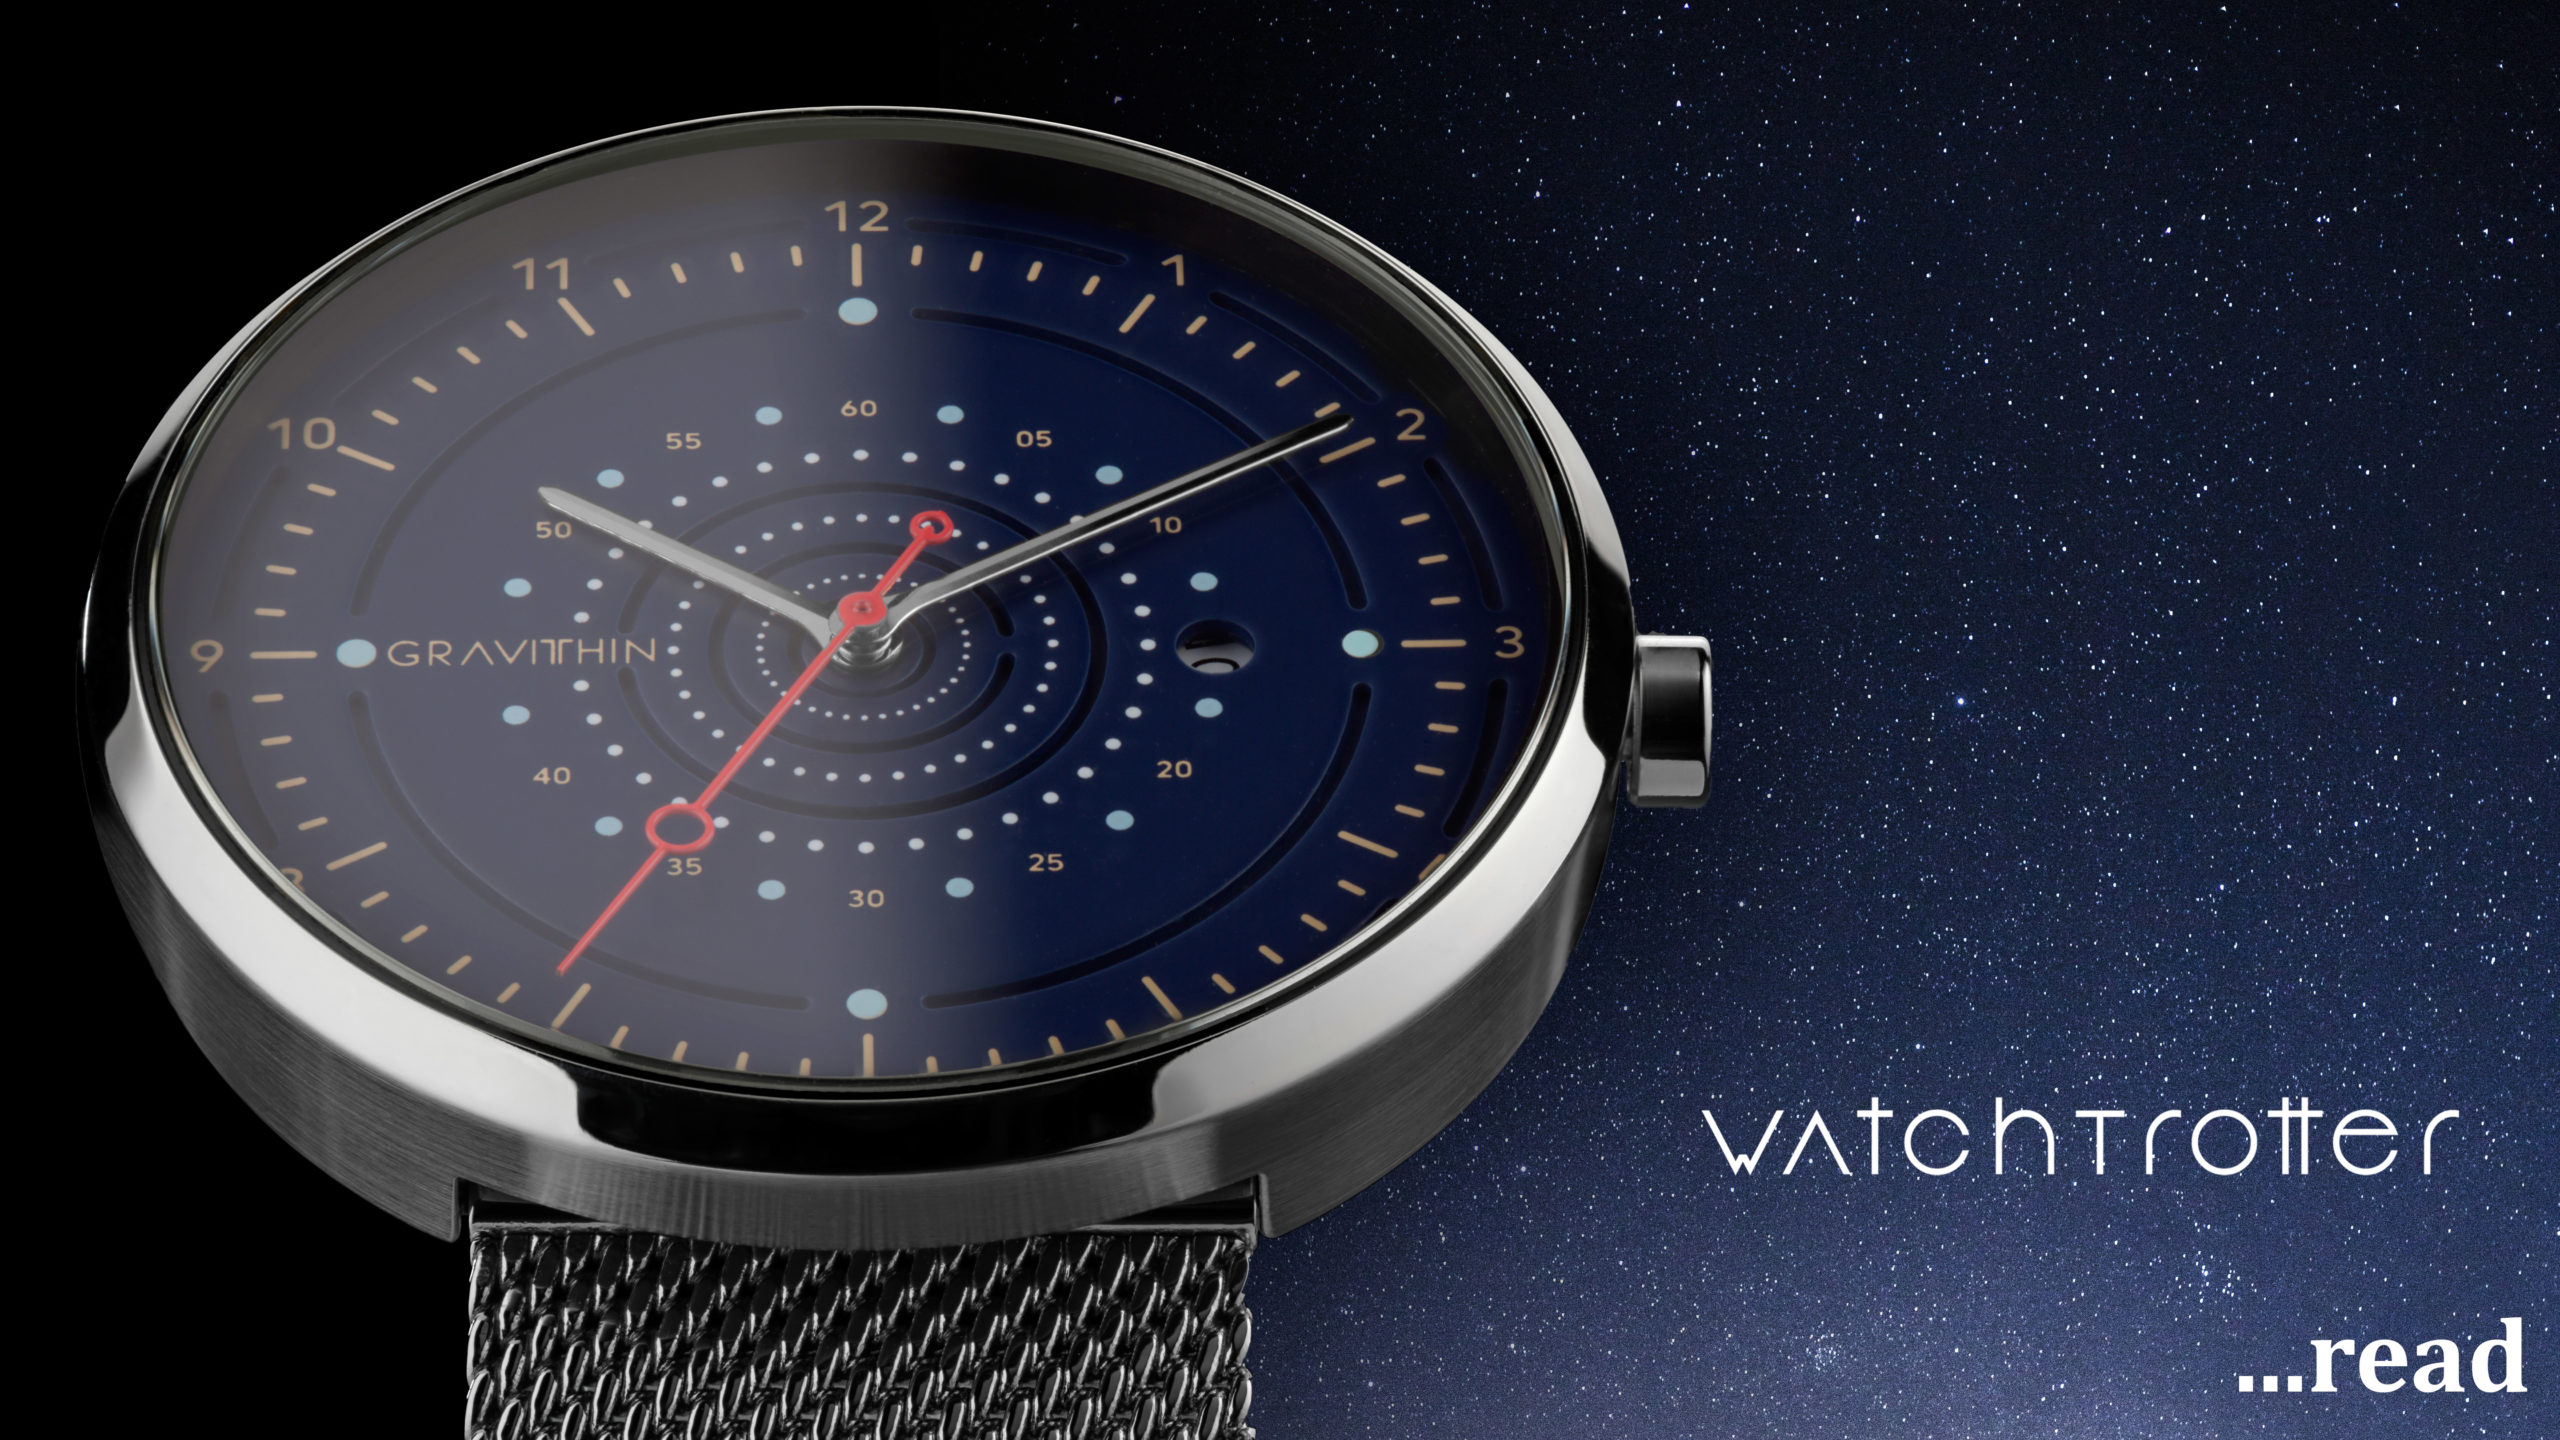 Gravithin on Watchtrotter